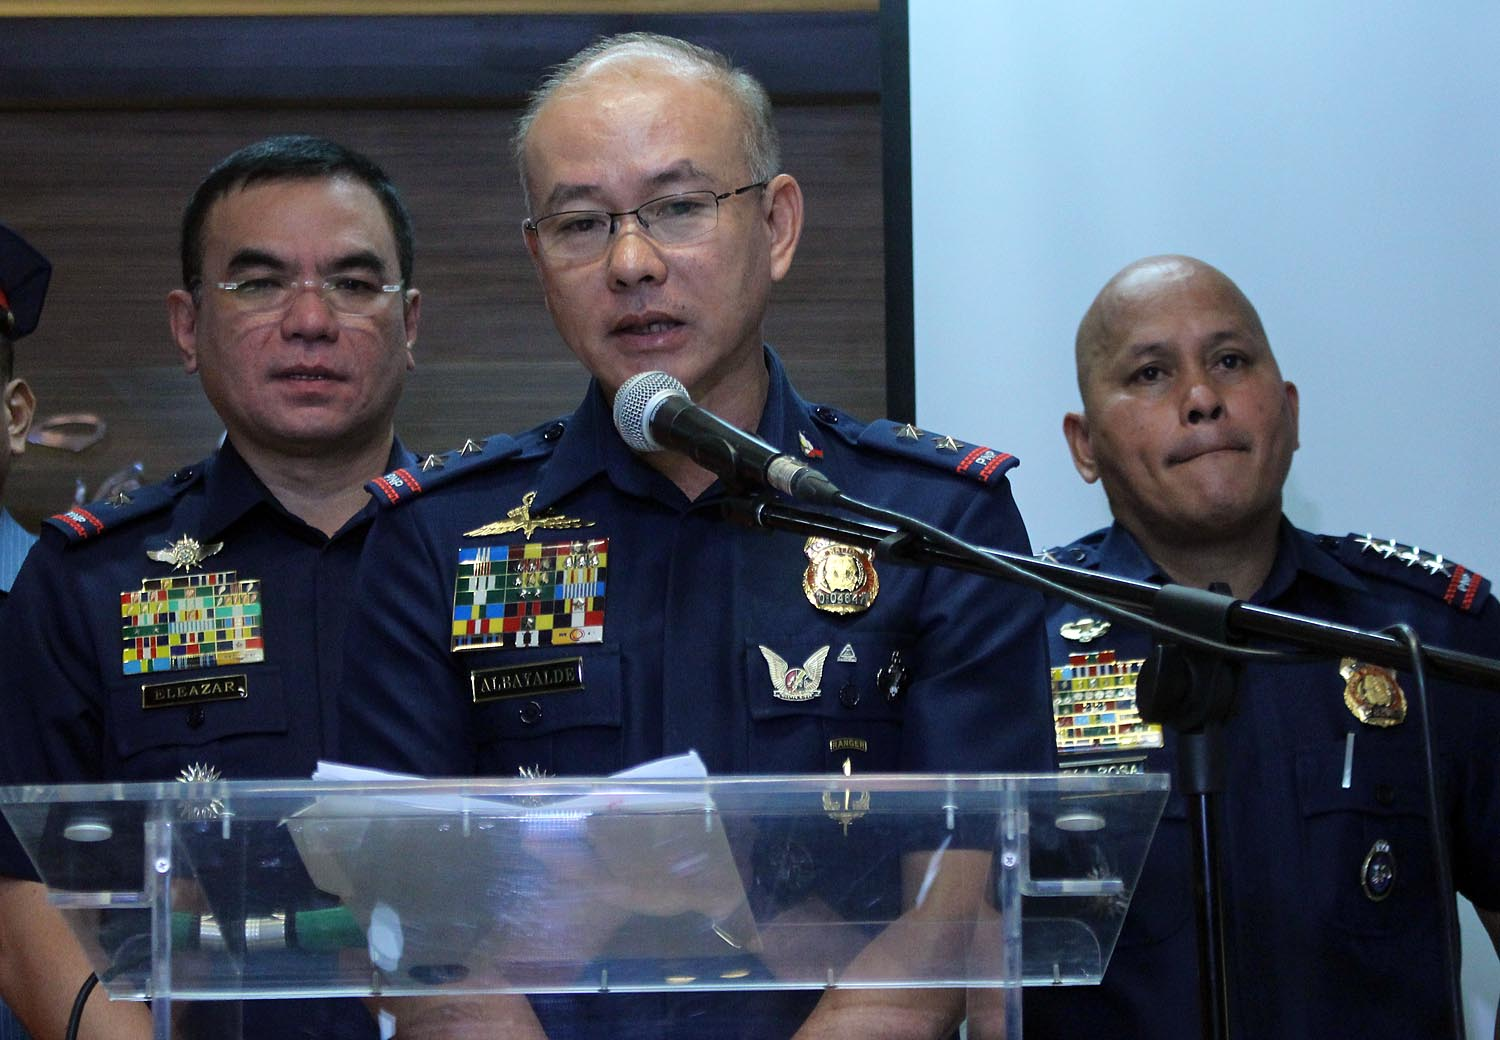 STRONG TIES. Former PNP chief Ronald dela Rosa (right), former NCRPO Director Oscar Albayalde (center) and former QCPD Director Guillermo Eleazar (left) during a press conference at Camp Crame. File photo by Darren Langit/Rappler